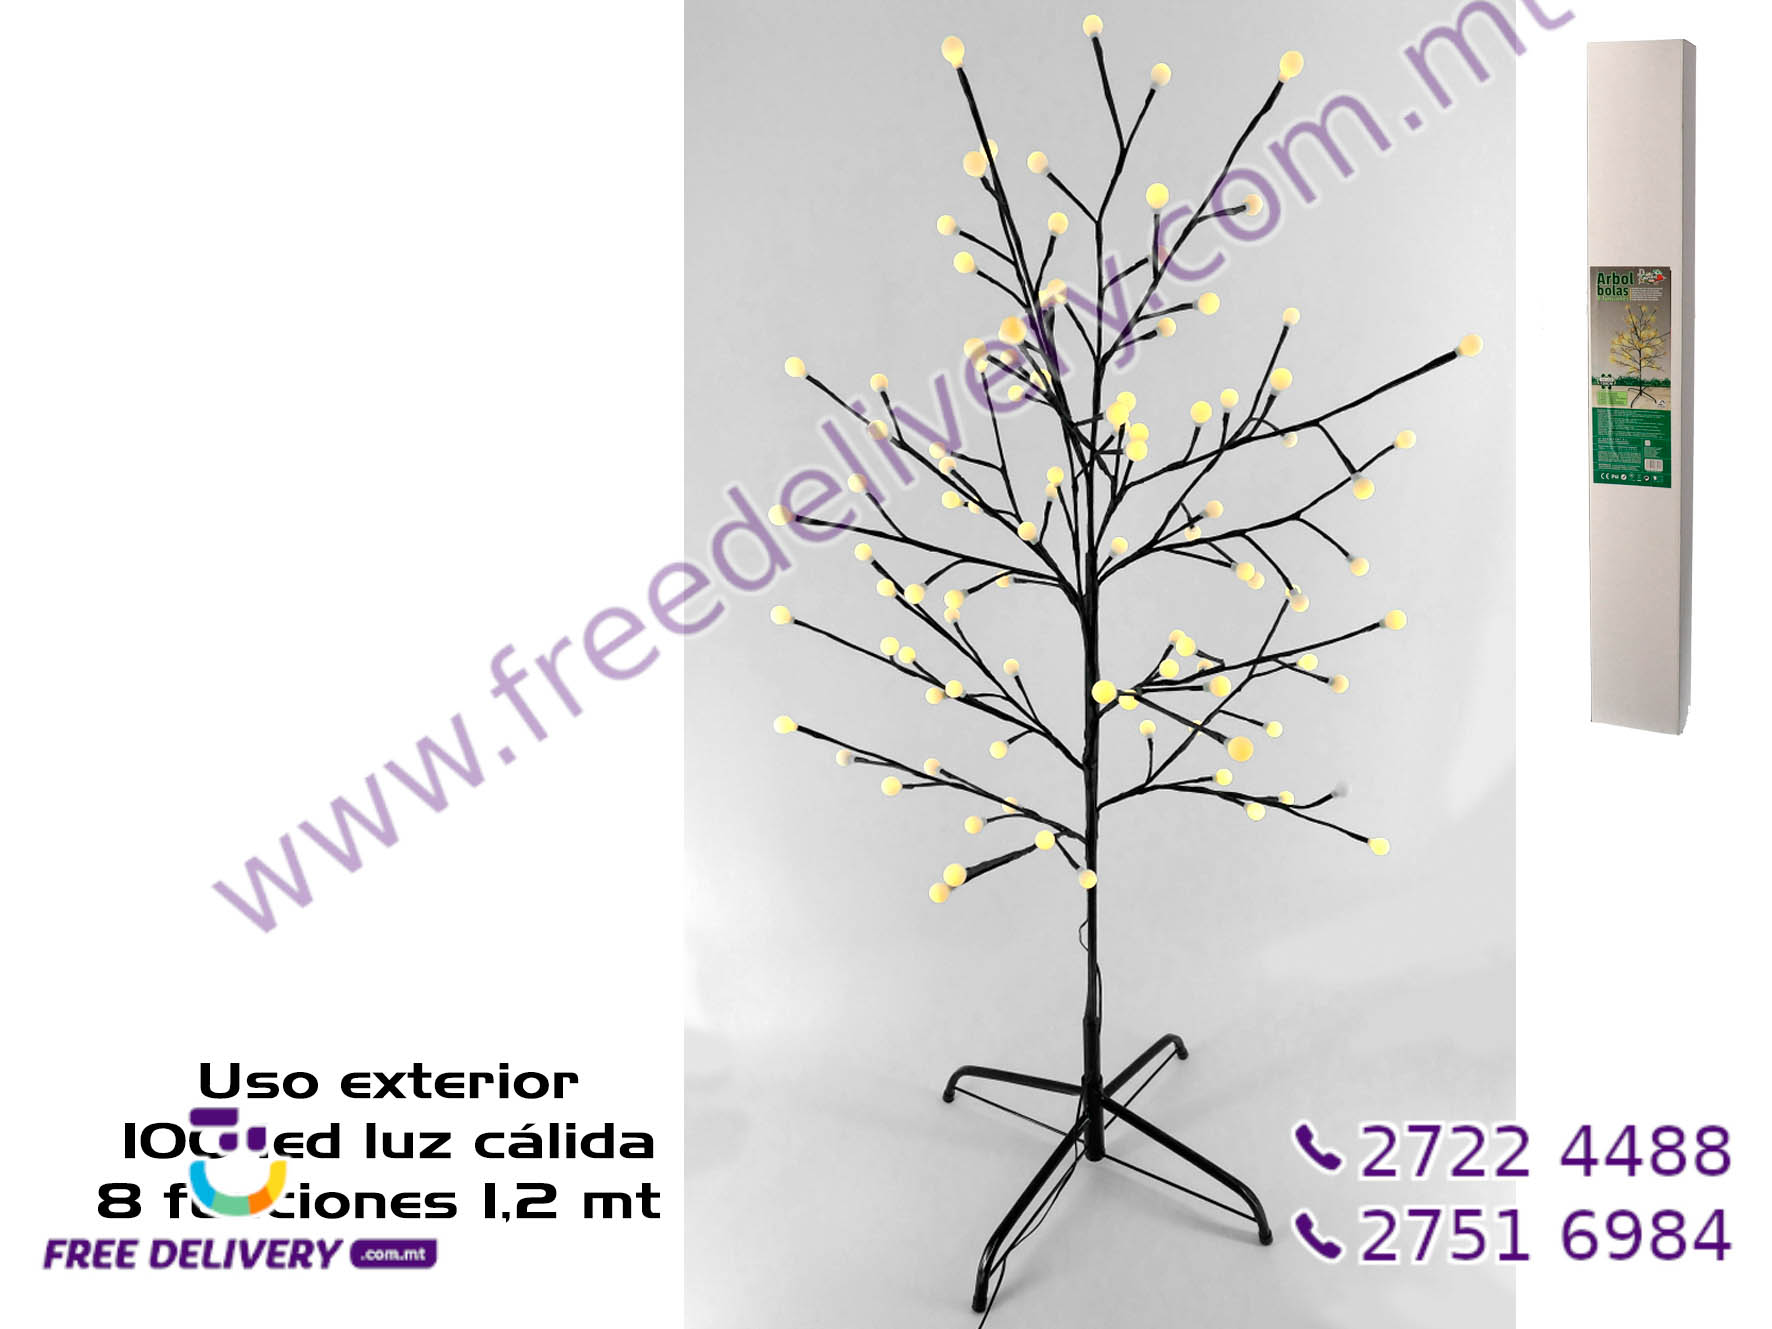 100 WARM LED TREE GE885713